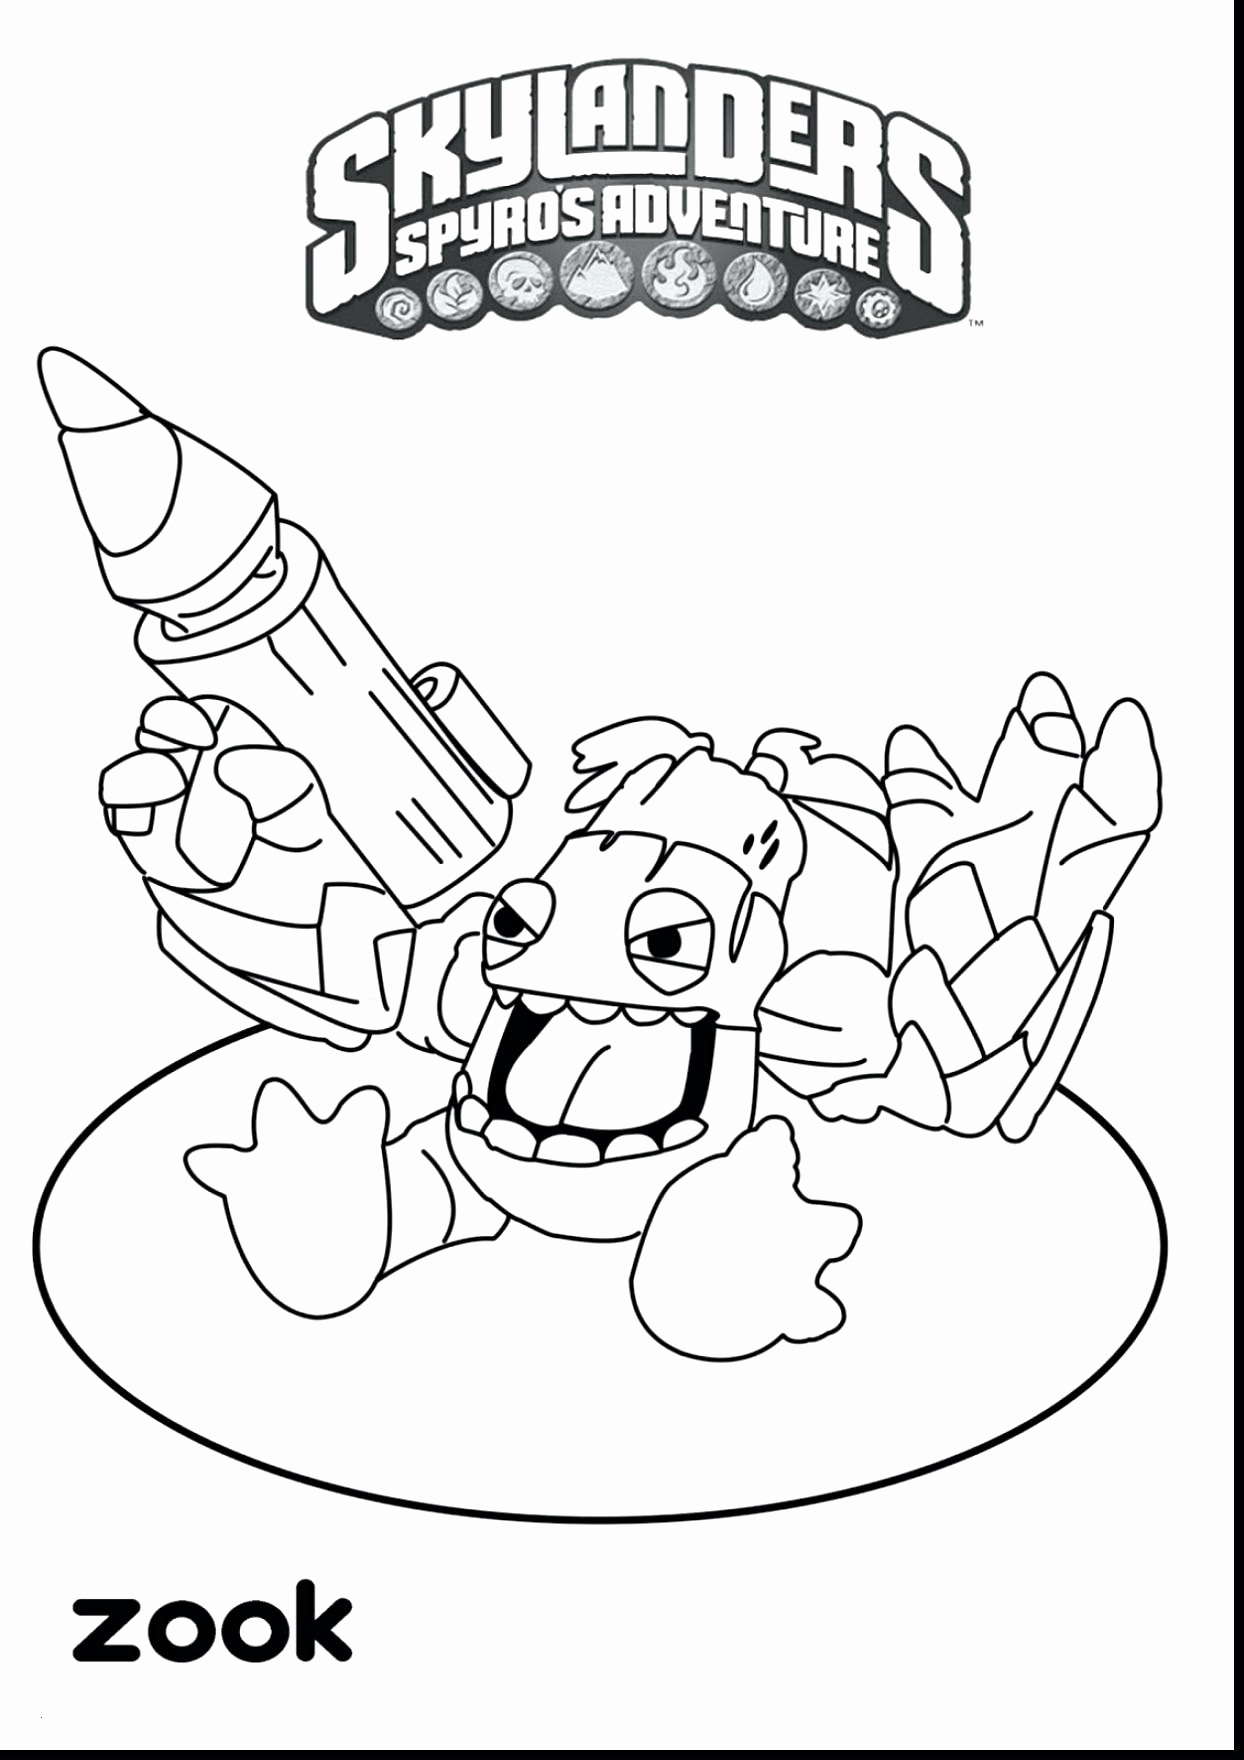 shopkins crayola coloring pages Download-Phone Coloring Pages African American Coloring Pages Brilliant Cool Coloring Page Unique 5-h